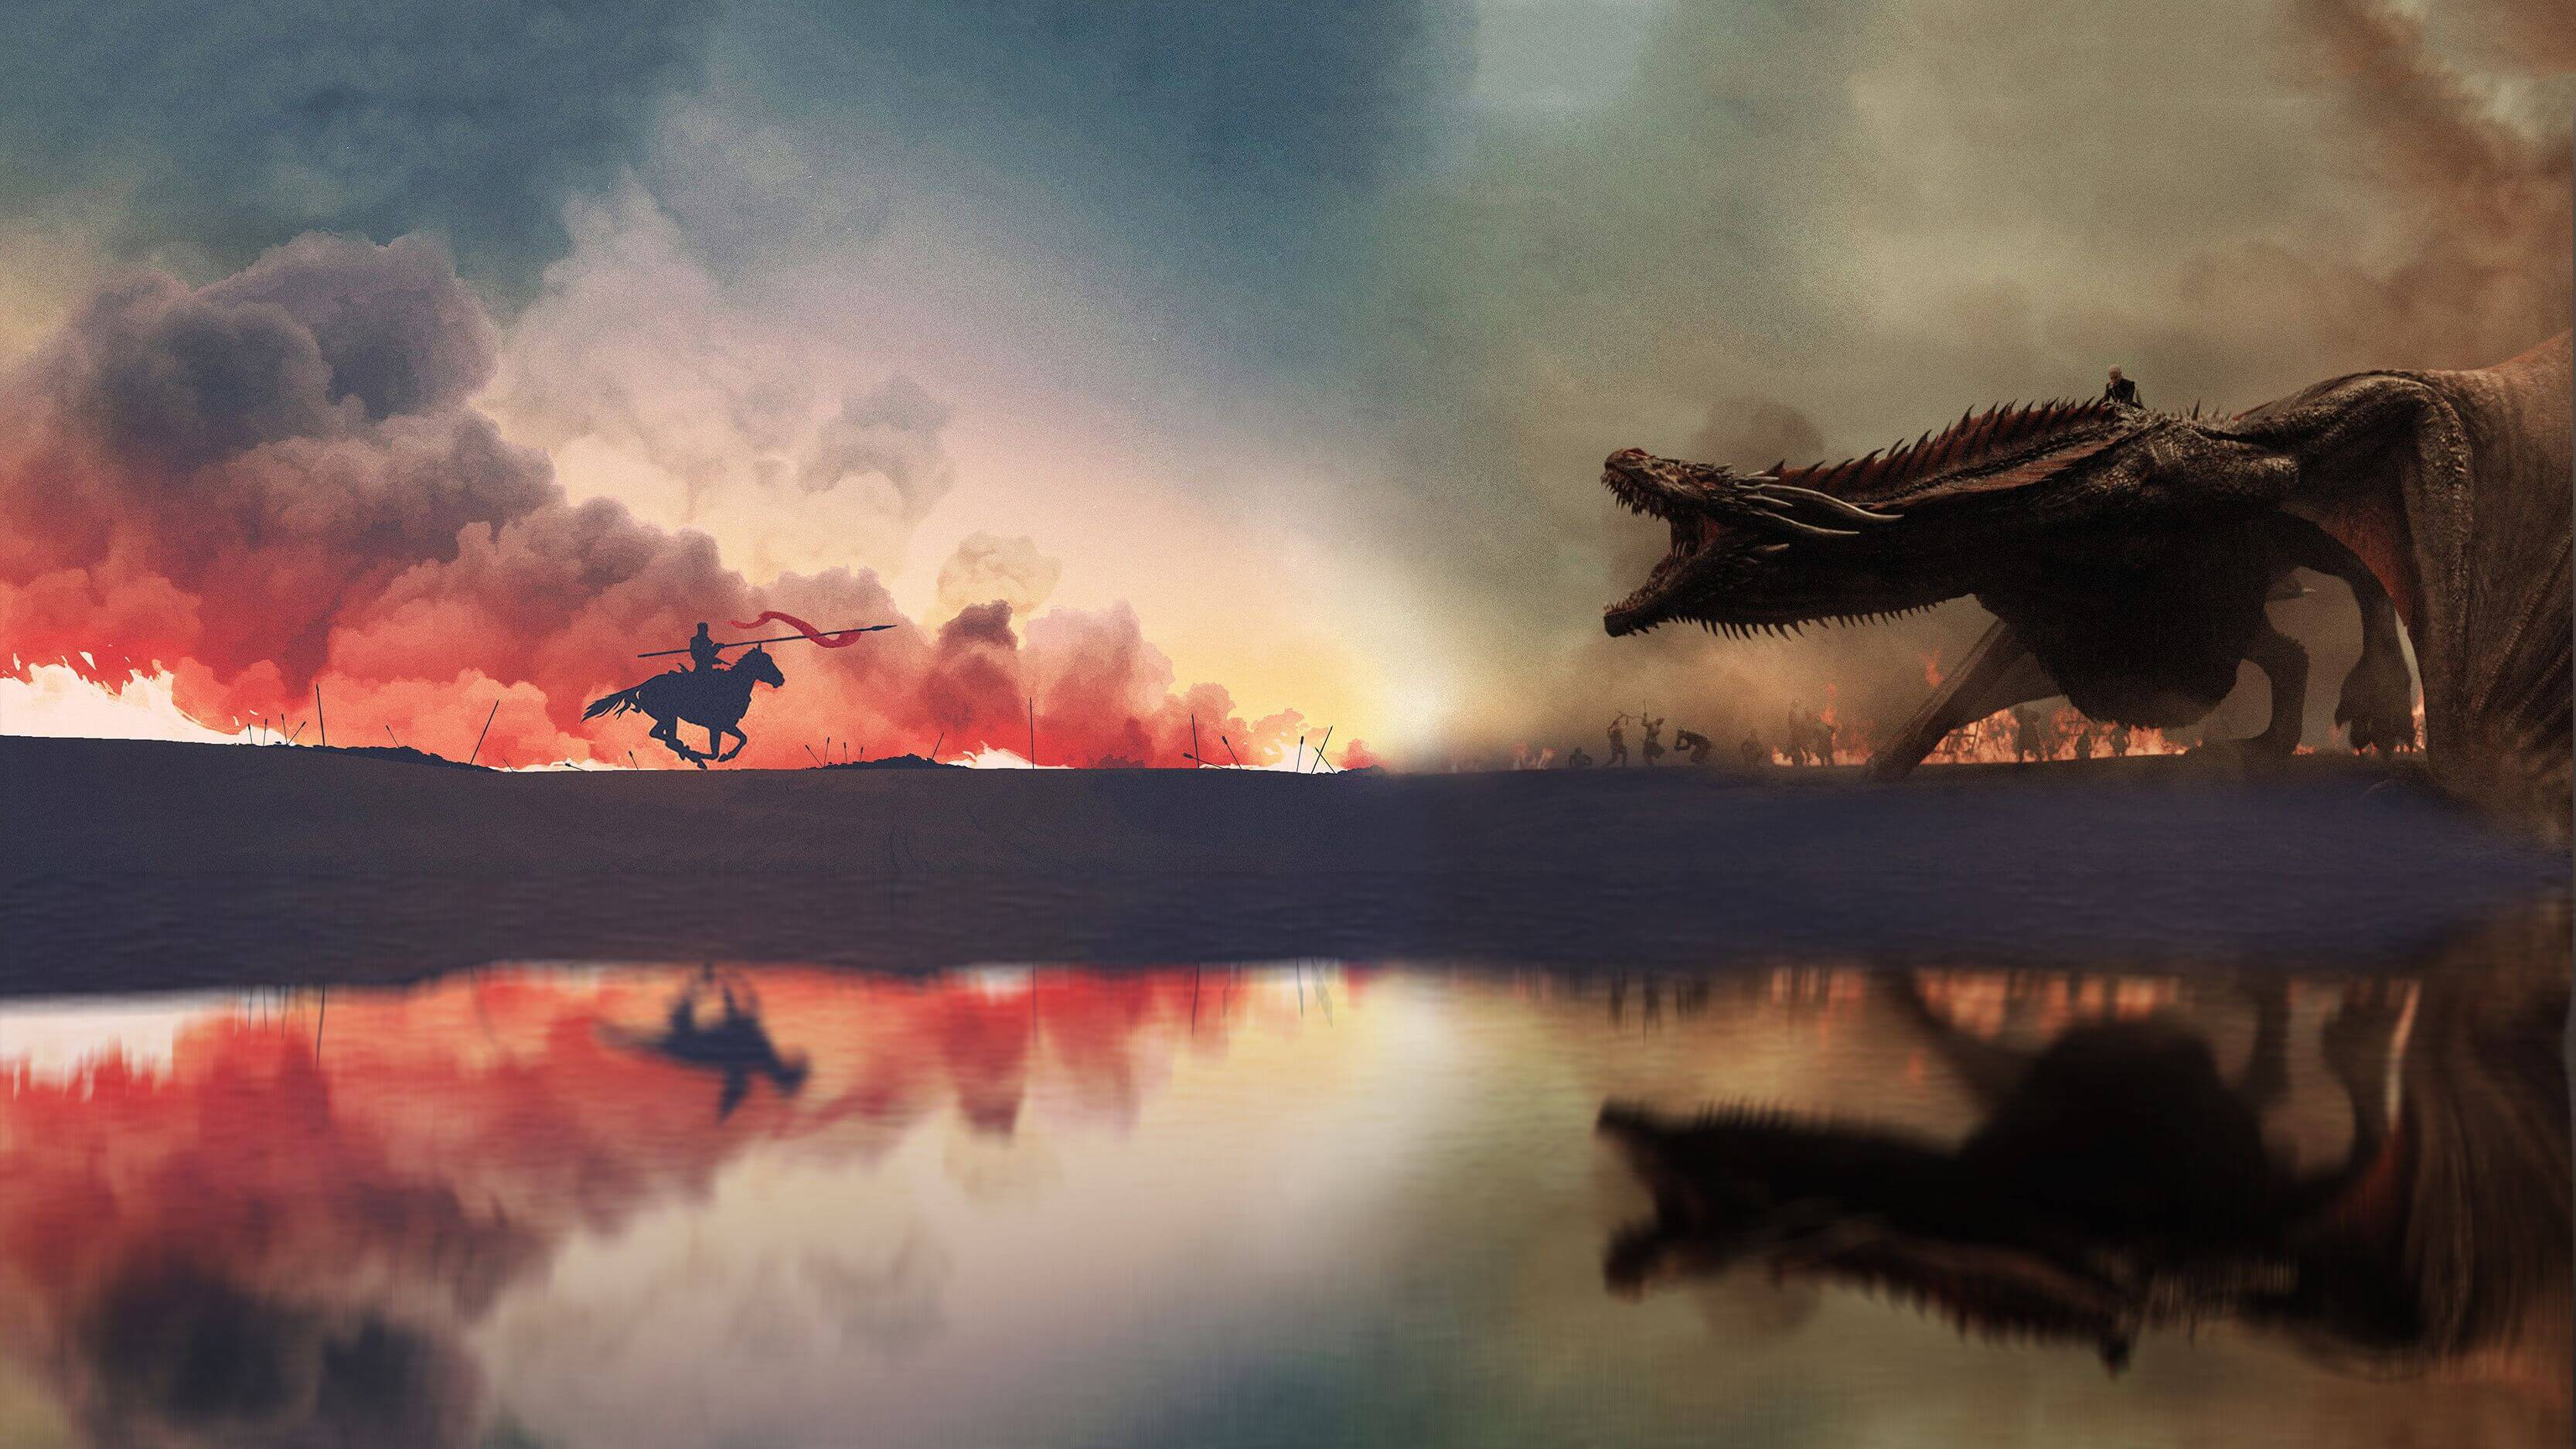 Game Of Thrones Season 8 Wallpaper Loot Train Attack Game Of Thrones 3332x1874 Wallpaper Teahub Io